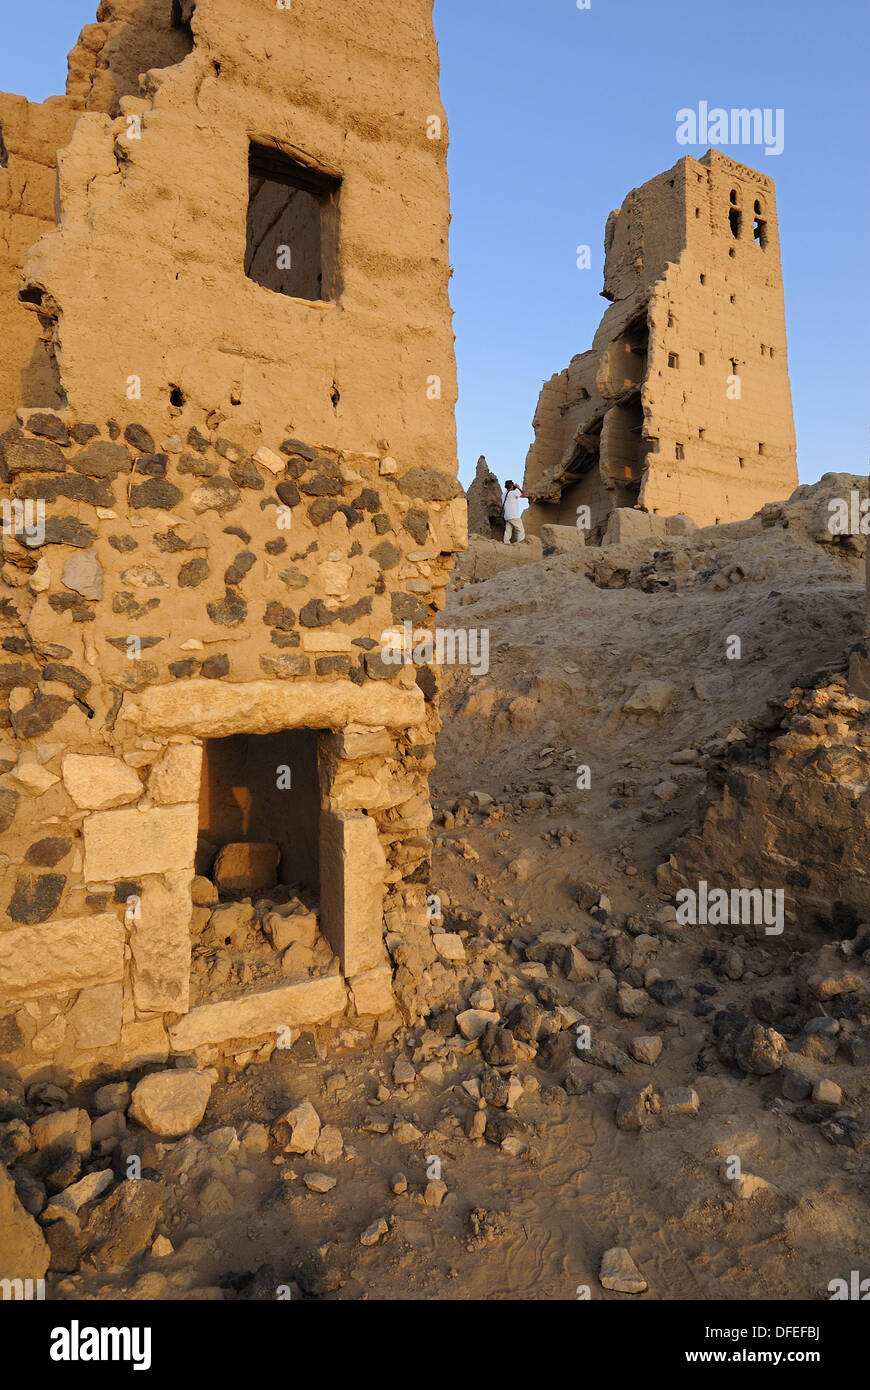 deserted historic adobe oldtown of Marib on the Incense Route, Yemen, Arabia, West Asia - Stock Image